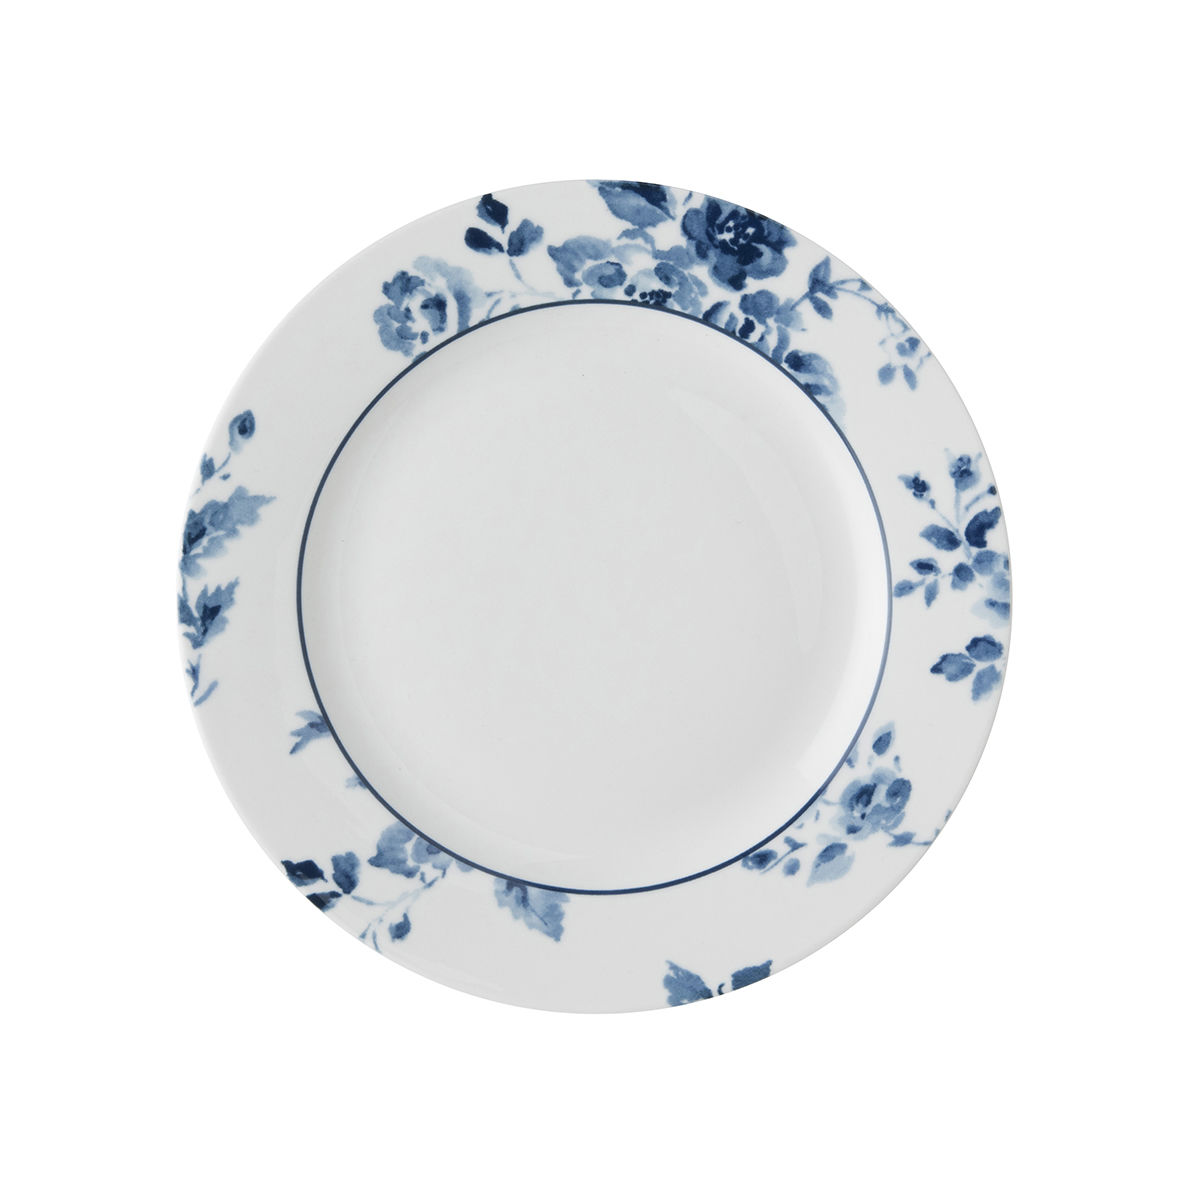 "Laura Ashley 6.85"" Plate China Rose - product images  of"